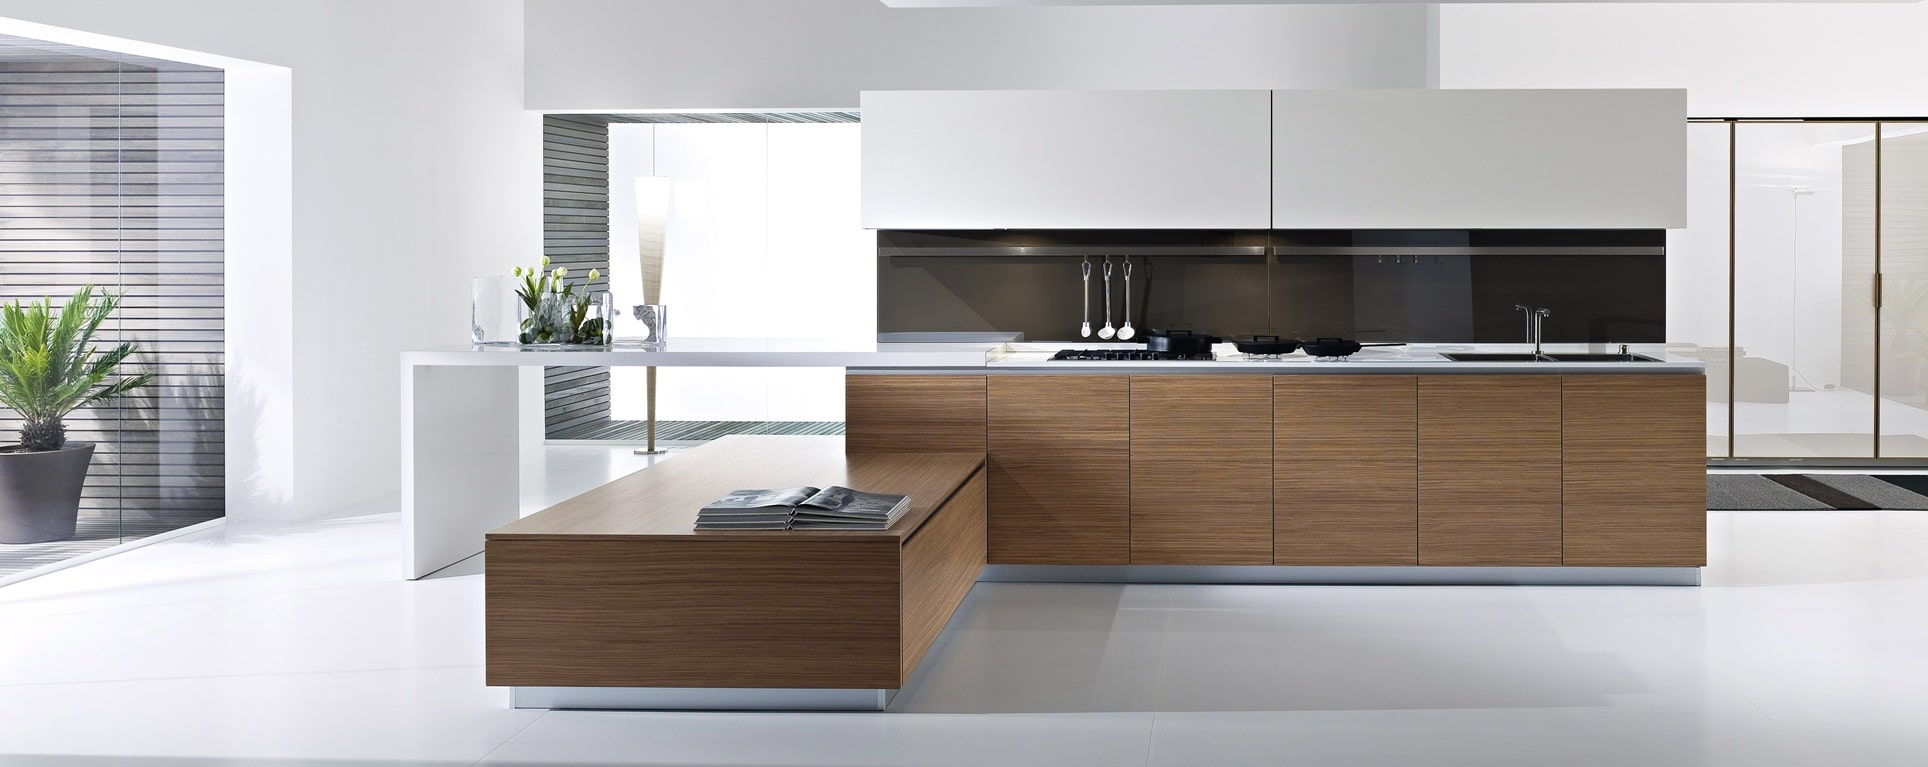 New kitchen design lebanon youtube within kitchen design for Modern kitchen design lebanon